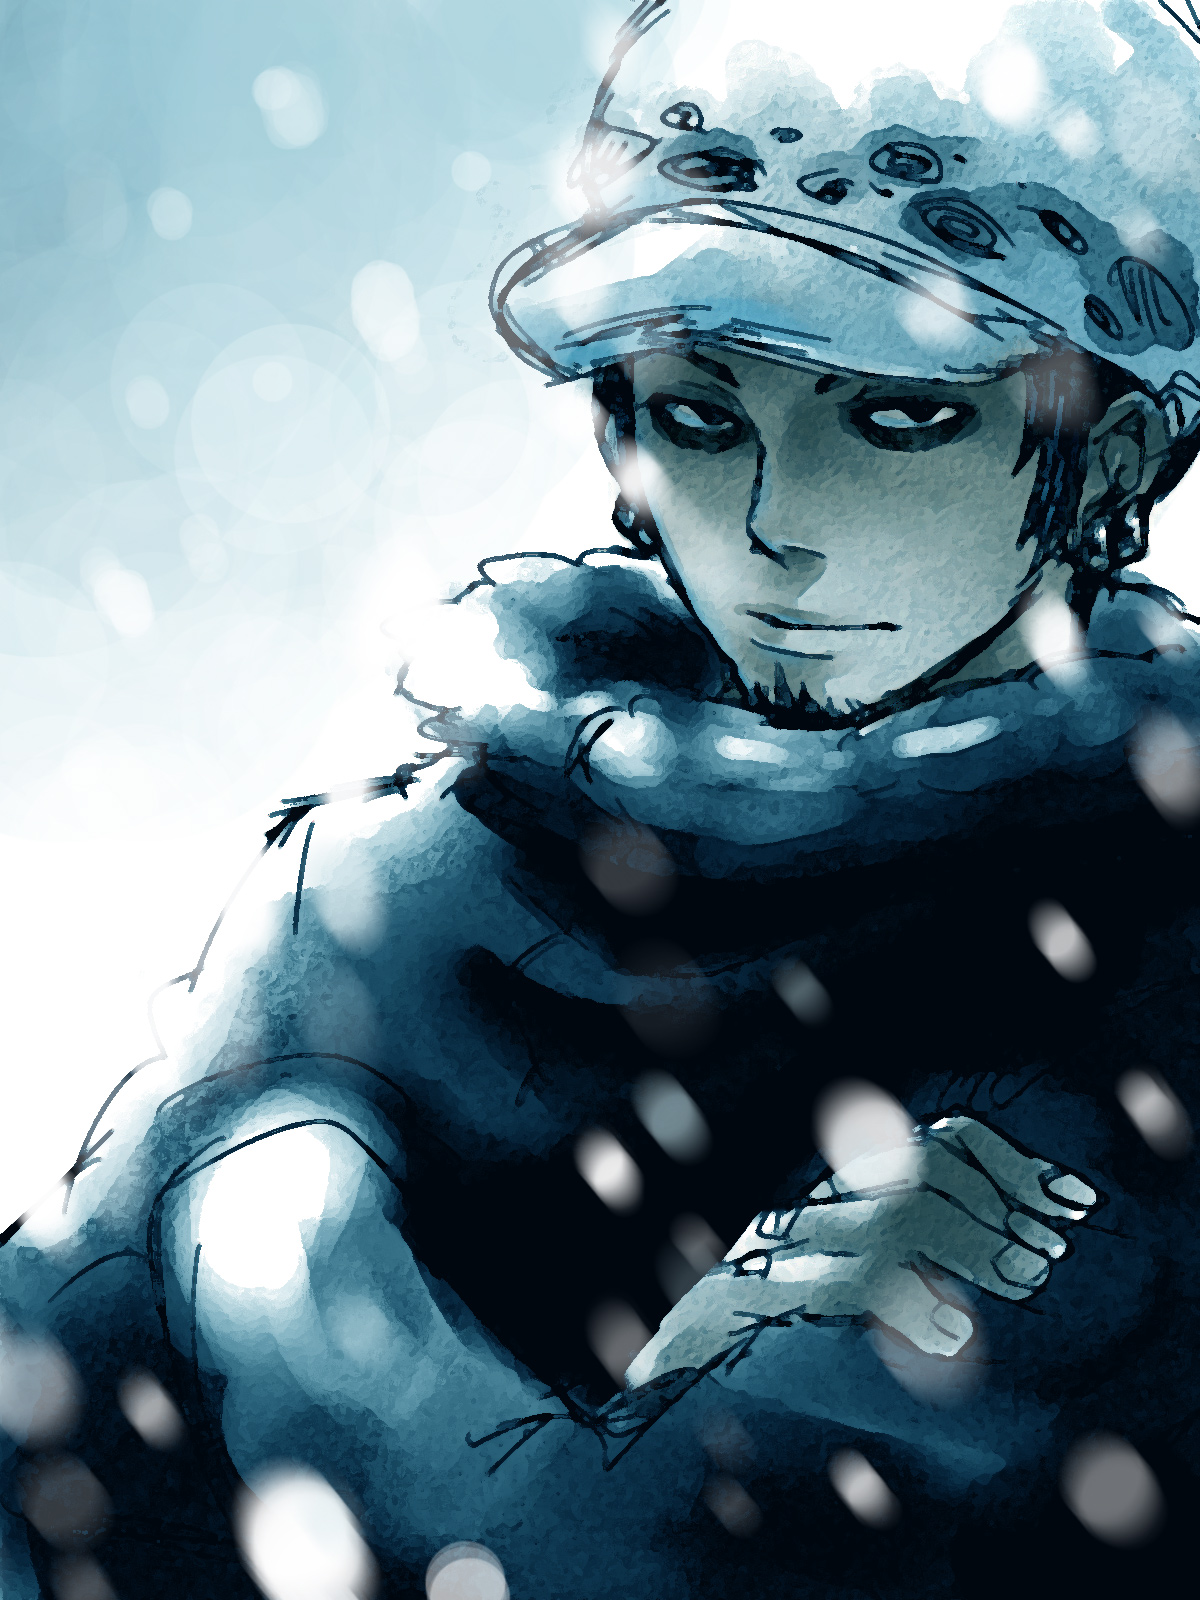 http://1.bp.blogspot.com/-Xnxf5rwtSXs/UIA0fjLgakI/AAAAAAAAAzQ/BJ-gBcrJgu8/s1600/Trafalgar_Law_Wallpaper_In_One_Piece_Anime_wallpapers_img_onepiece_img-onepiece.blogspot.com-%252325.jpg